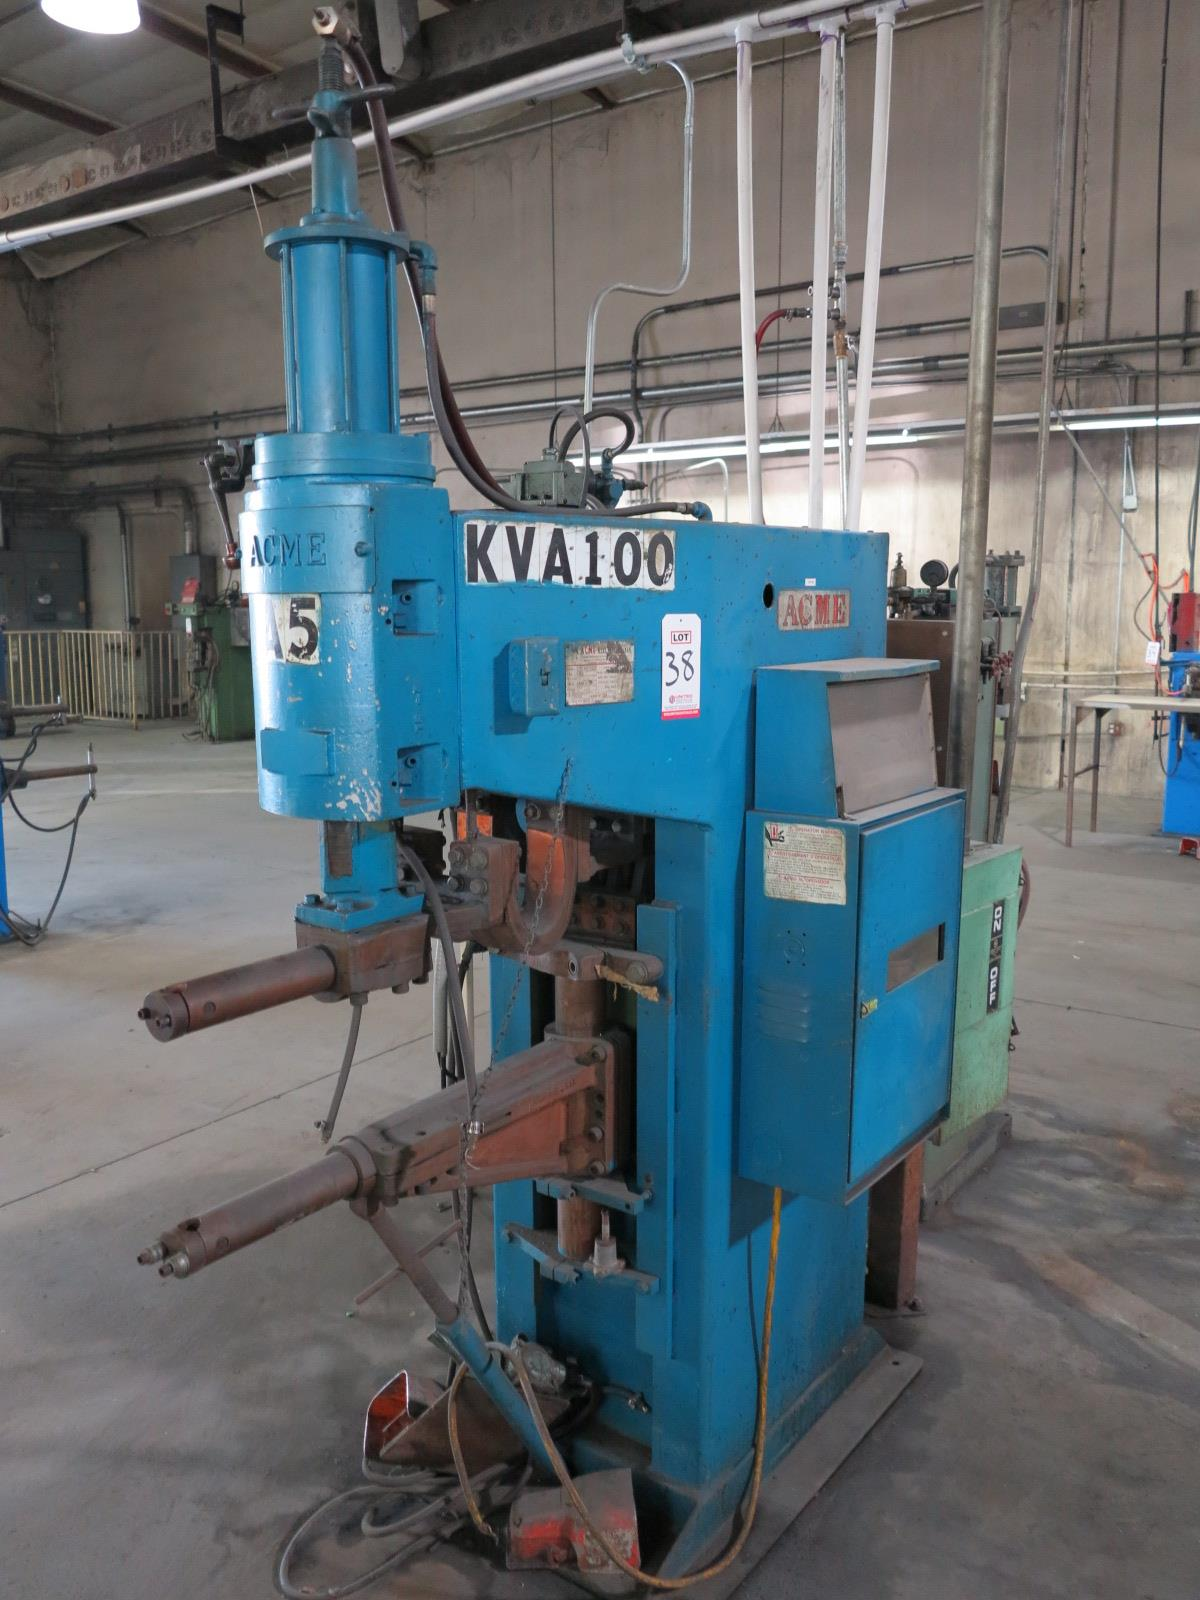 "ACME SPOT WELDER, PT1S-24-100, 100 KVA, ENTRON CONTROLLER, 28"" THROAT, S/N 14766, FOOT PEDAL - Image 2 of 2"